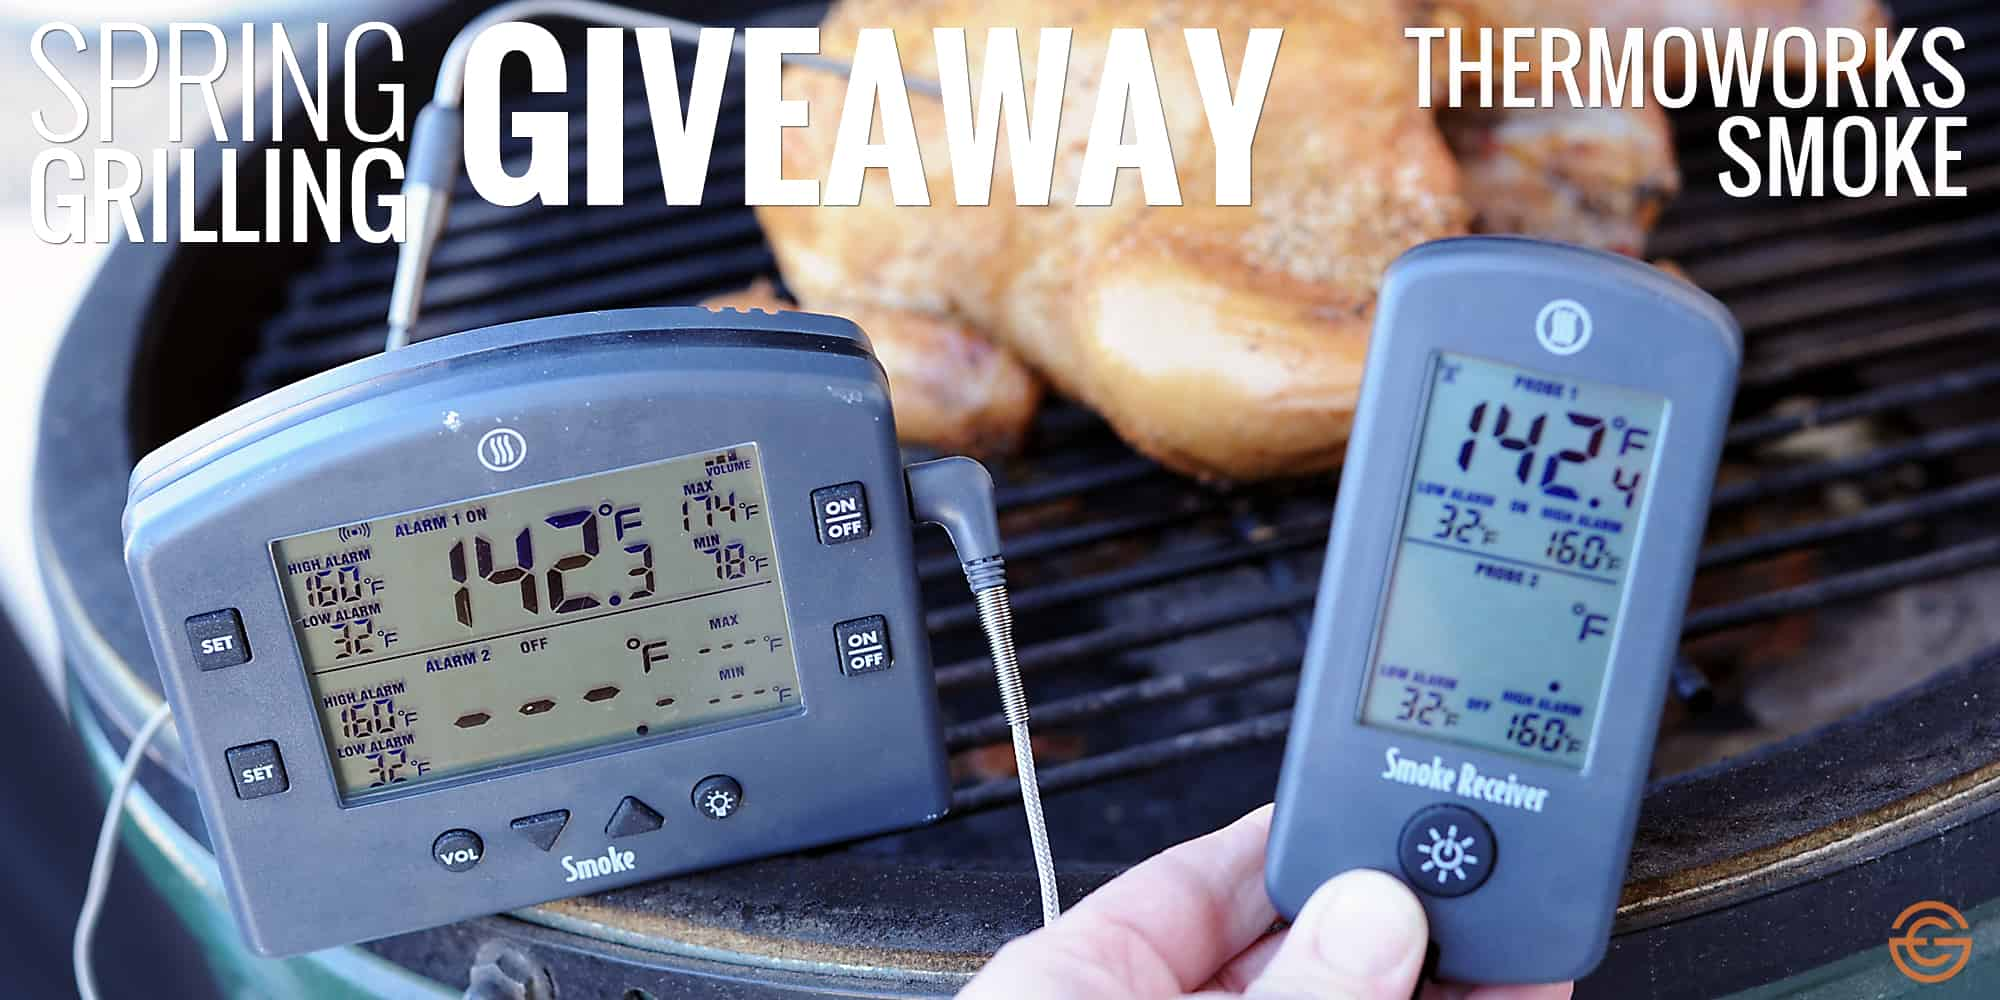 Holding a thermometer and receiver by a grilling chicken